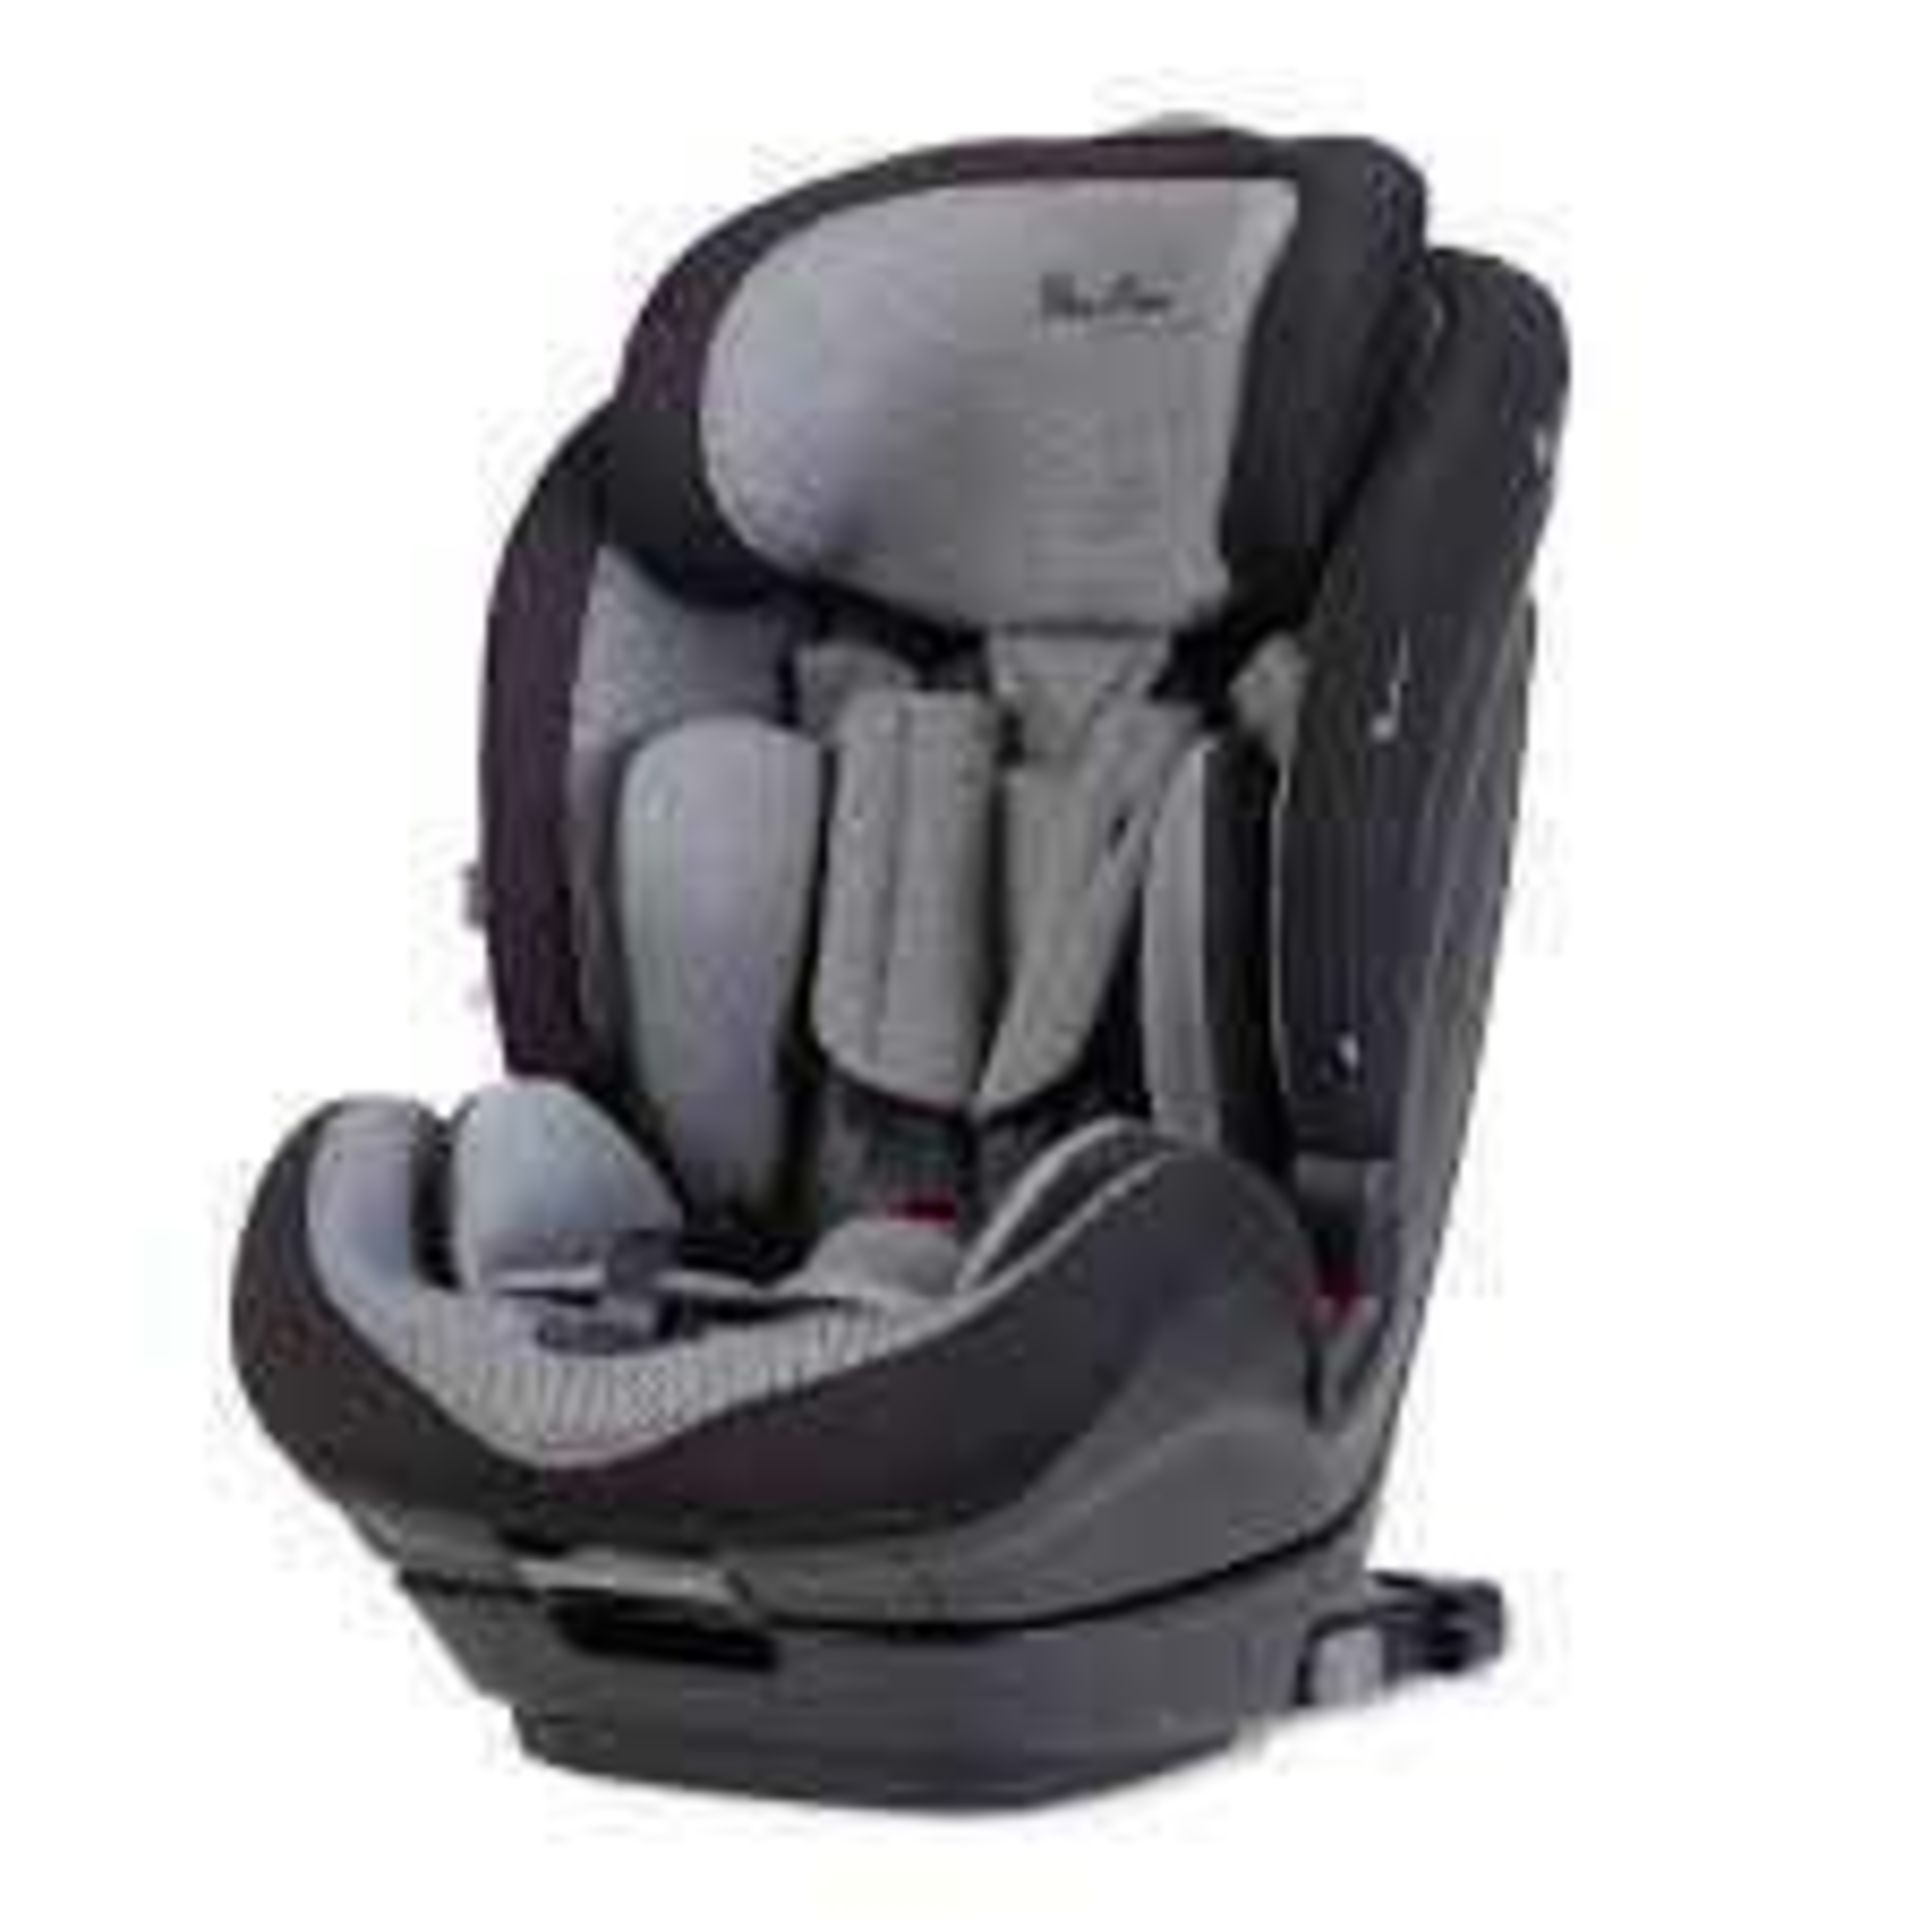 RRP £225 Unboxed Silver Cross Balance Groups 1 2 And 3 Child Safety Car Seat With Base